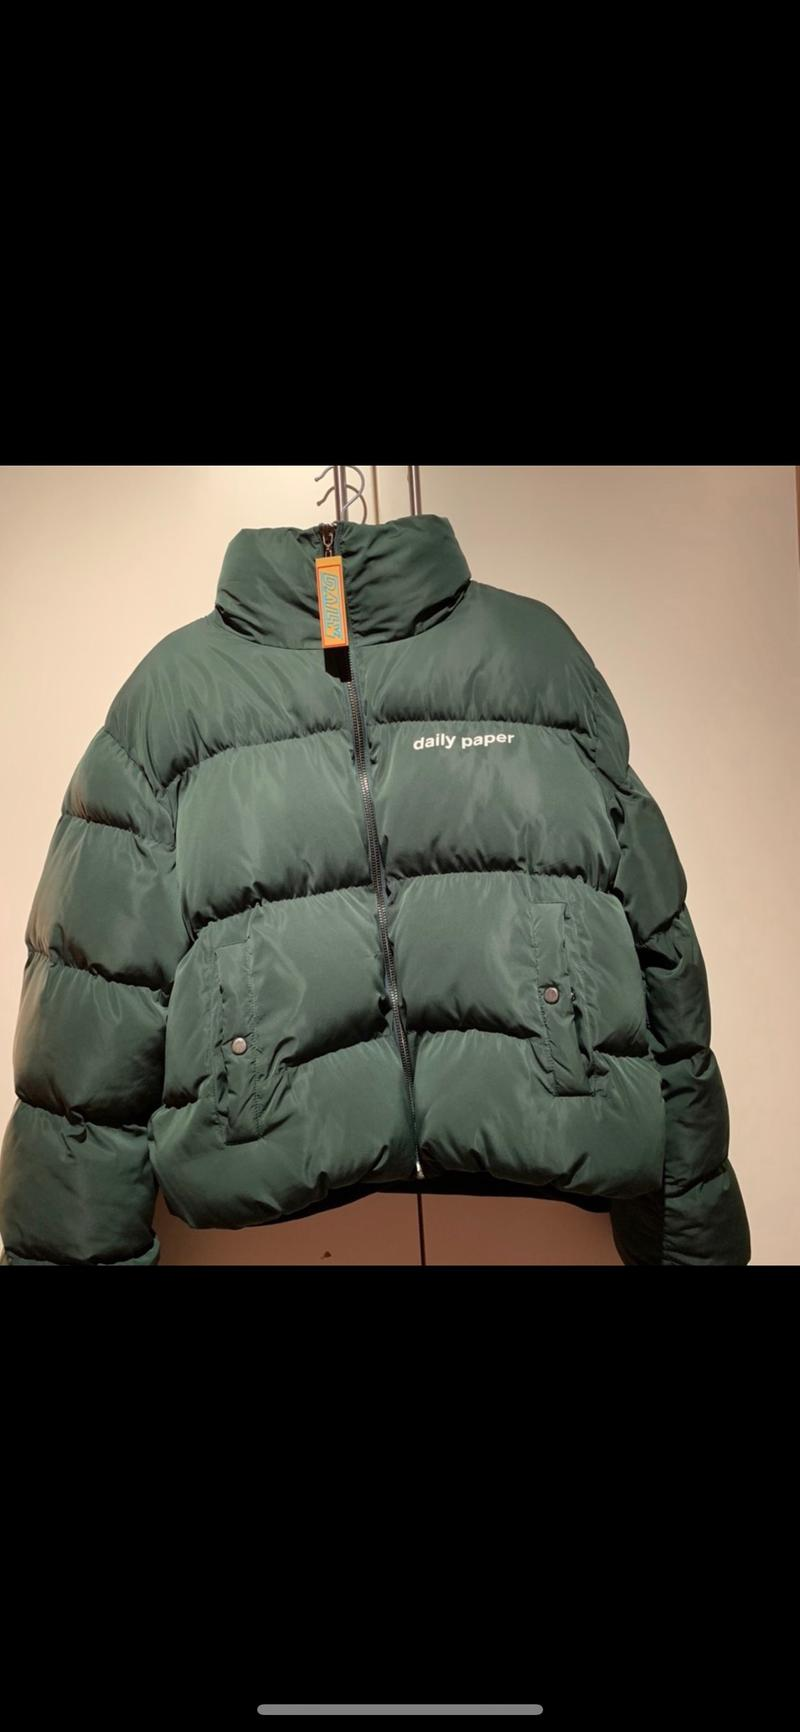 Daily Paper Puffer Jacket